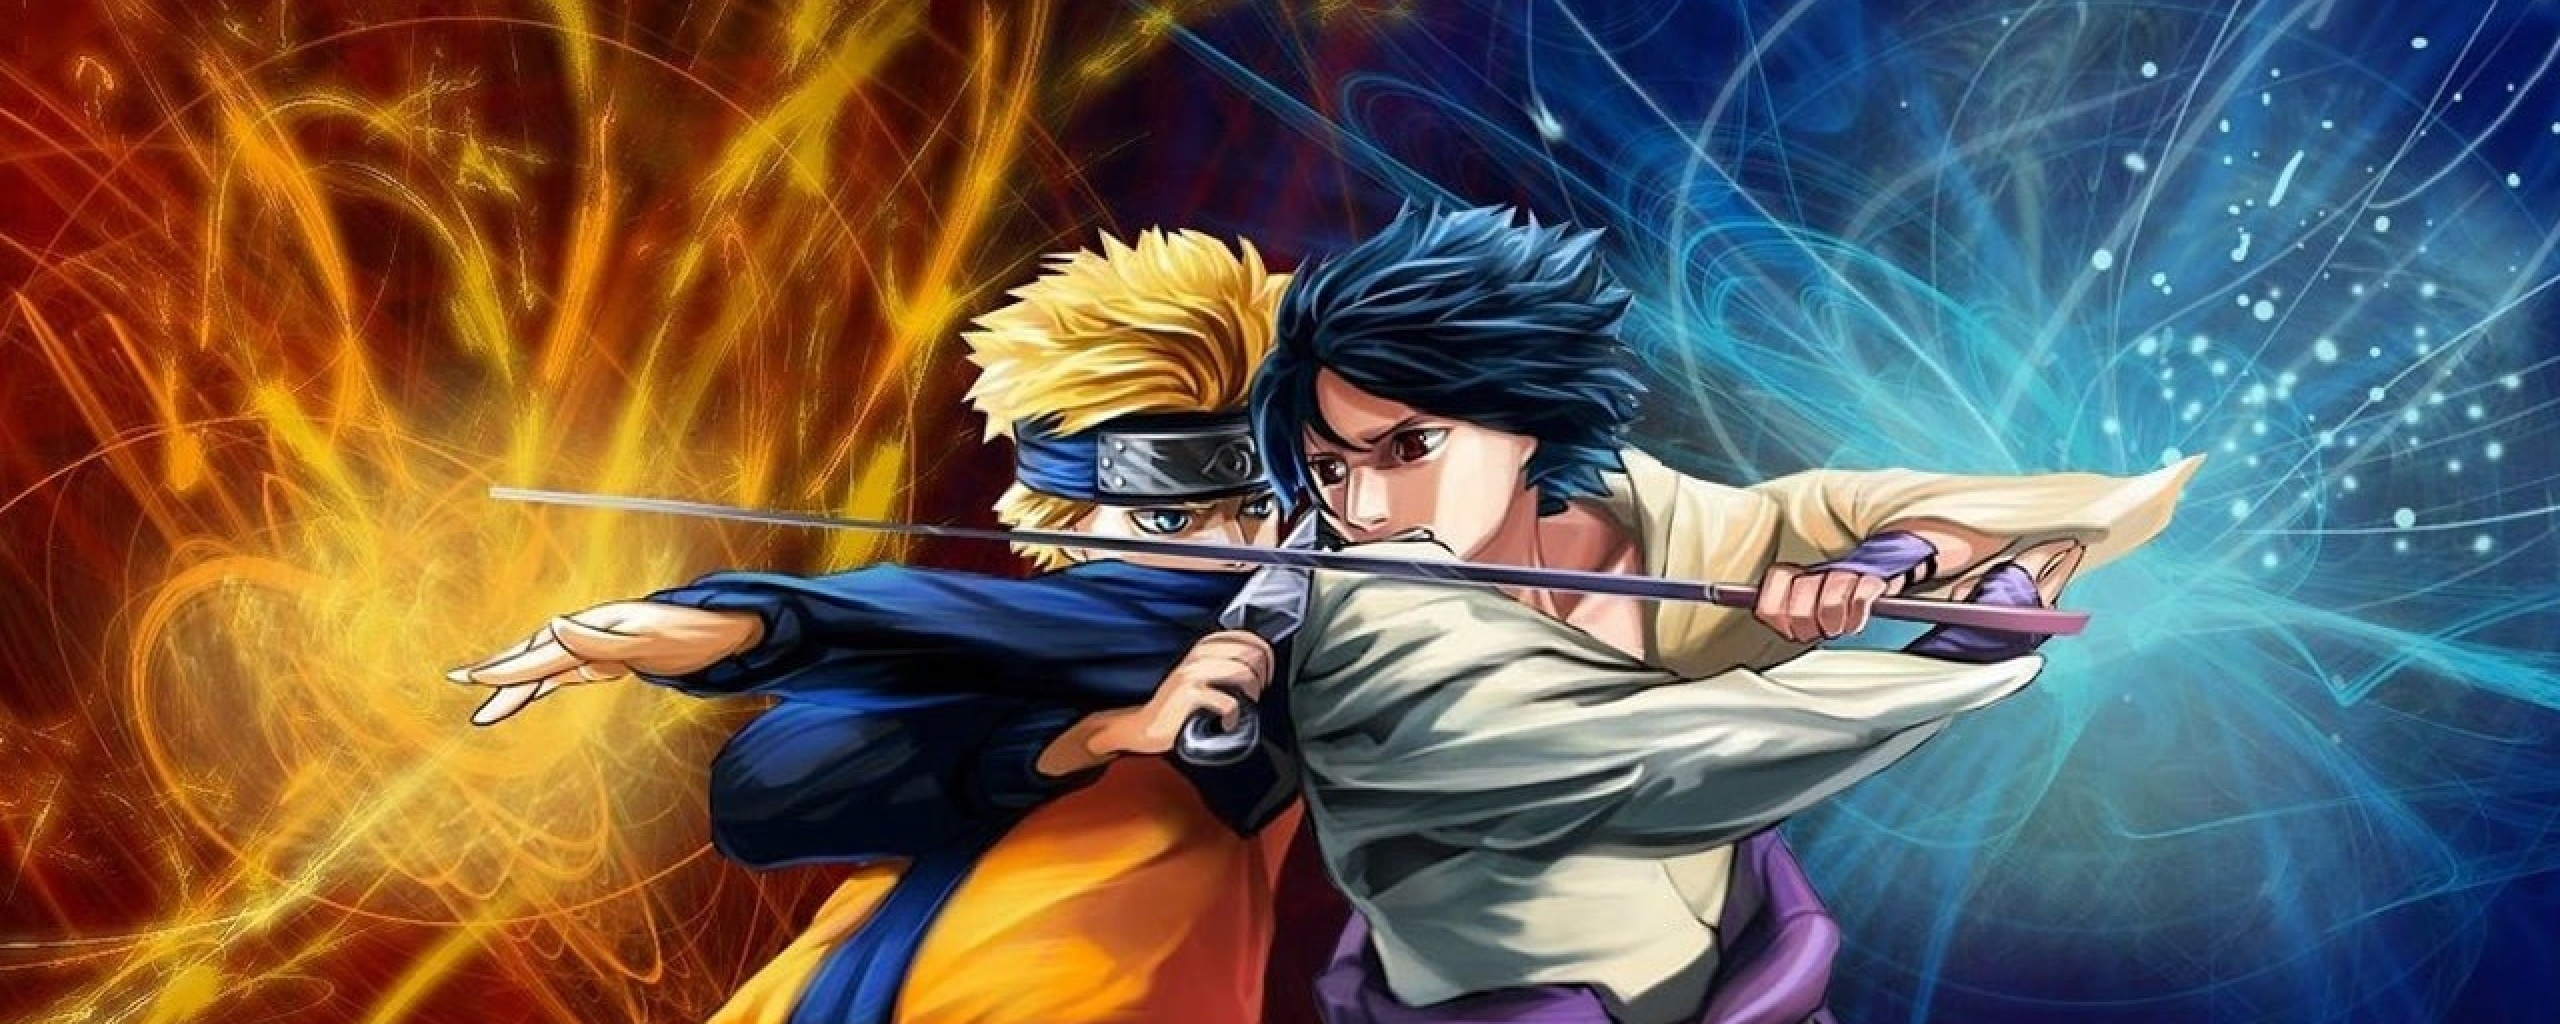 Dmt Wallpaper Hd Naruto Wallpaper Dual Screen Pic Mch088770 Dzbc Org